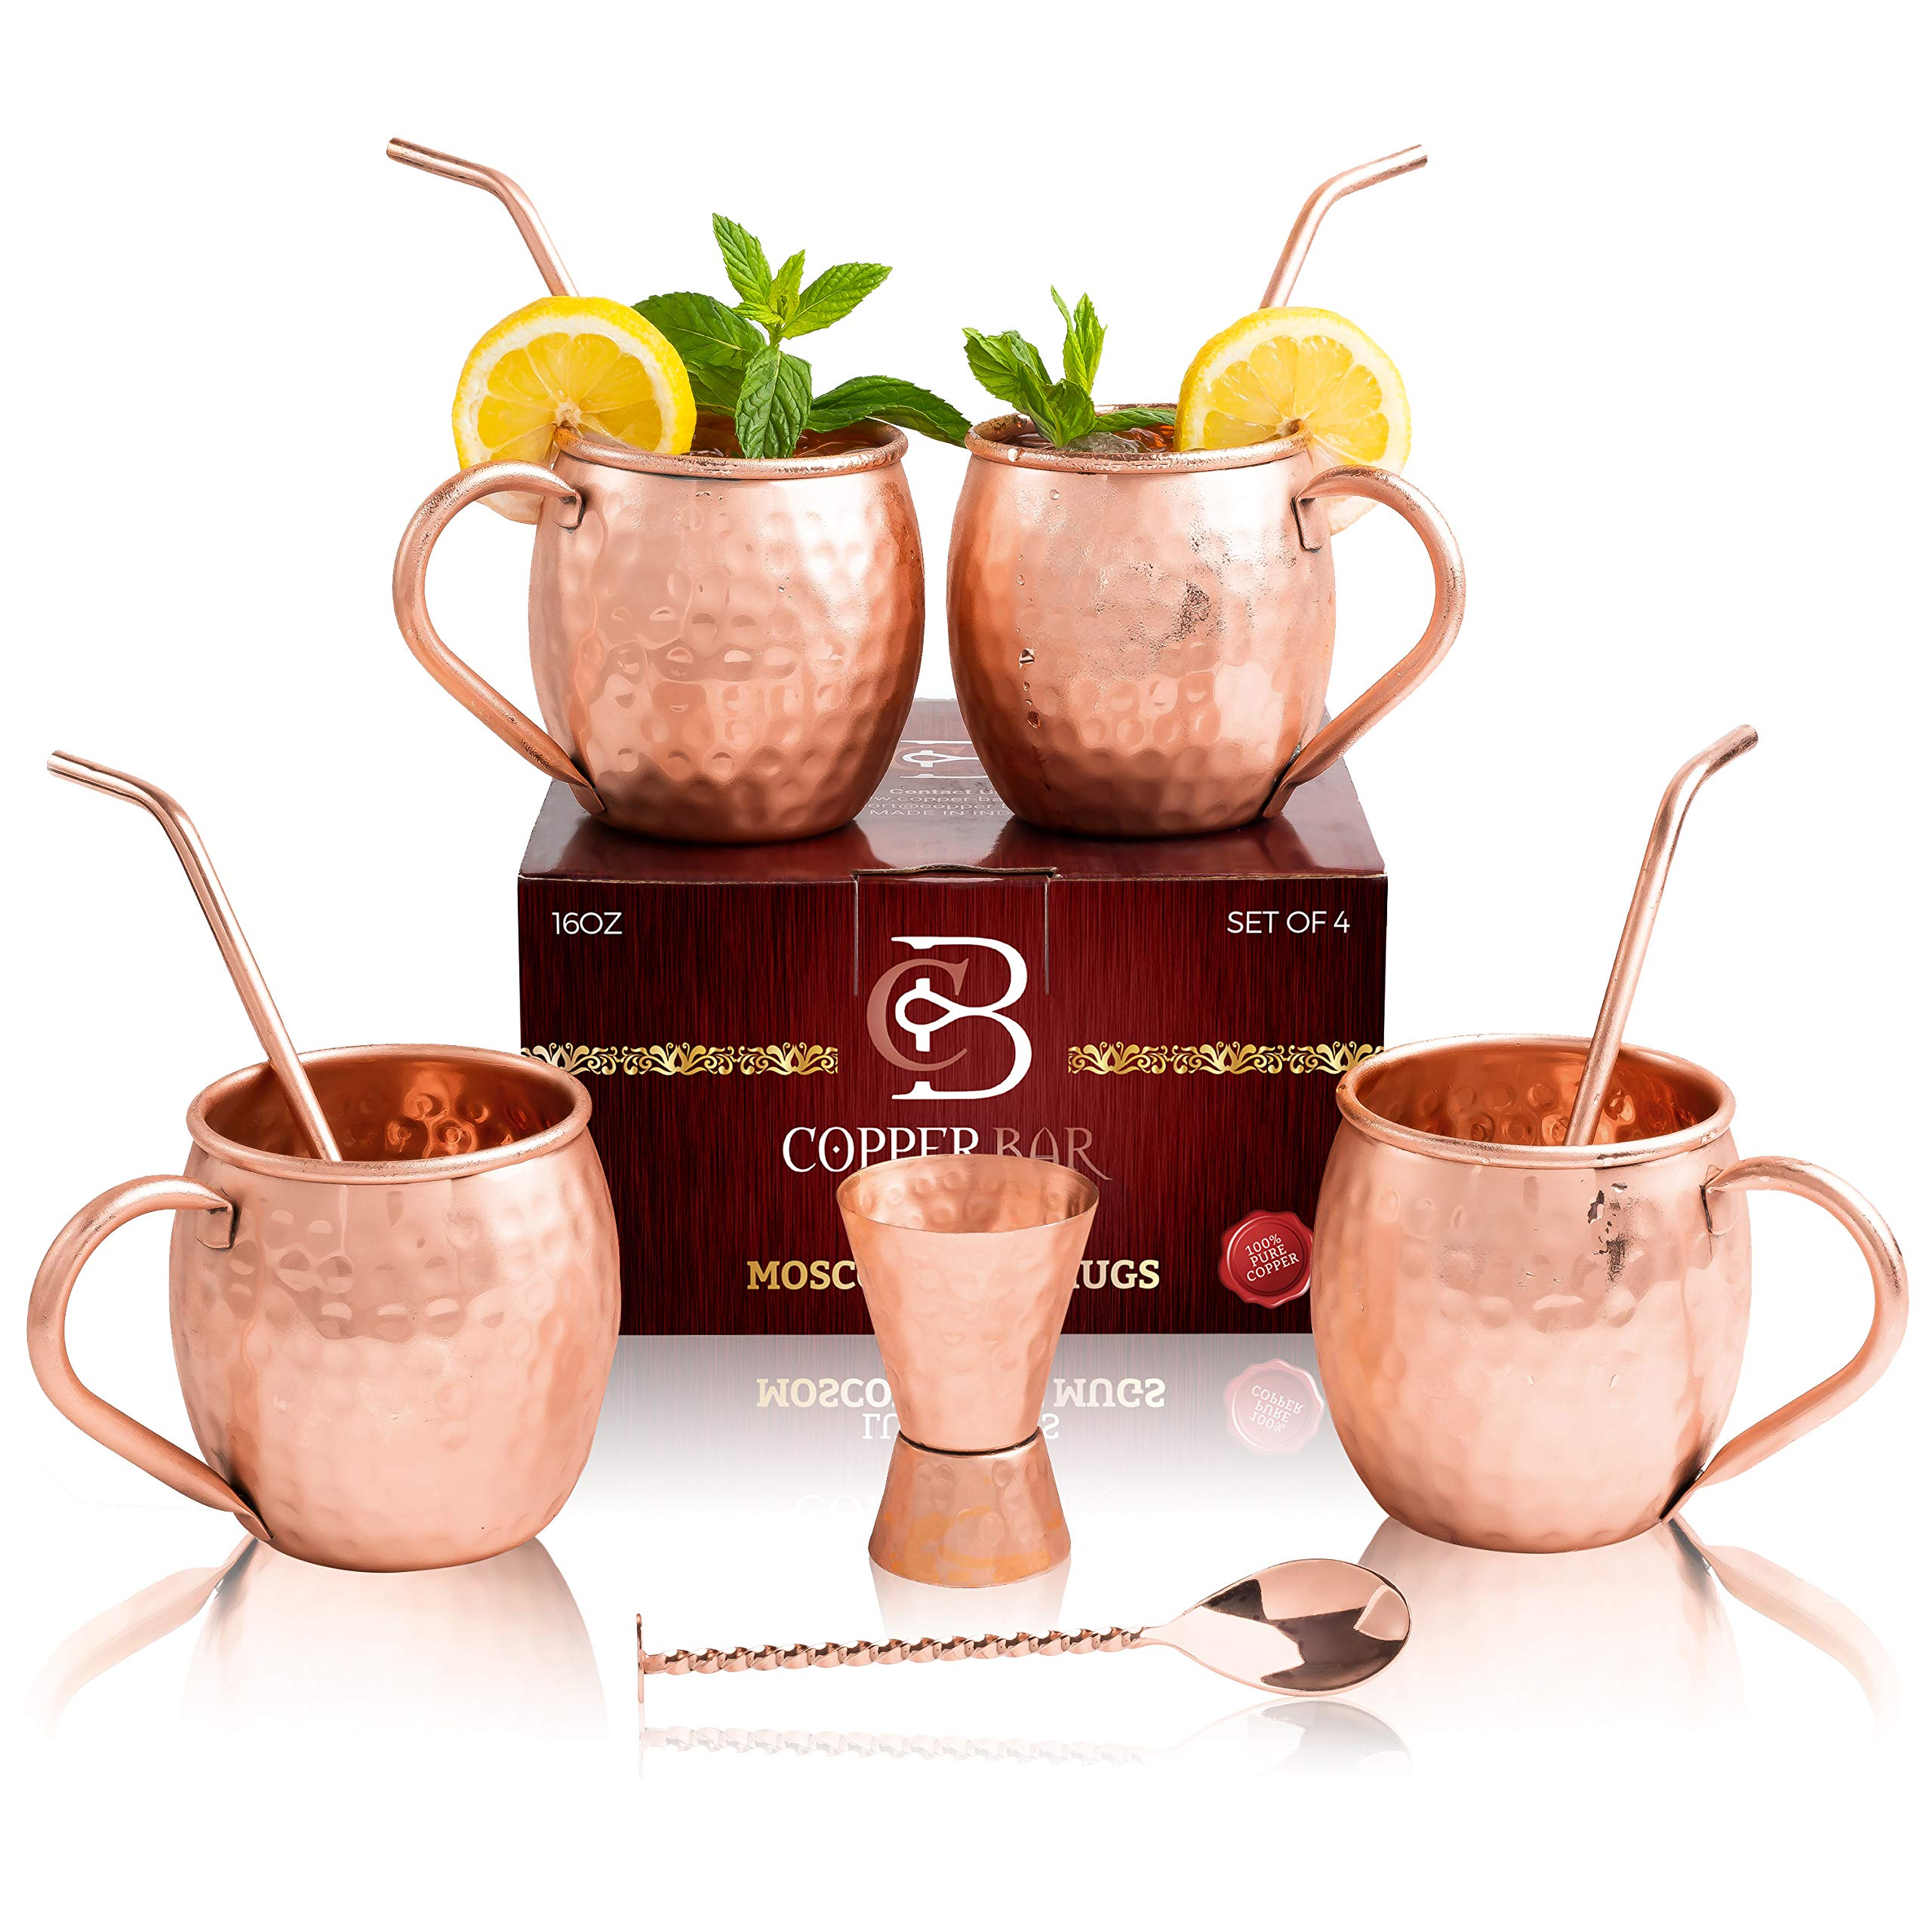 Moscow Mule Copper Mugs - Set of 4-100% HANDCRAFTED - Food Safe Pure Solid Copper Mugs - 16 Oz Gift Set with 4 Highest Quality Cocktail Copper Straws, 1 Jigger and 1 Stirrer